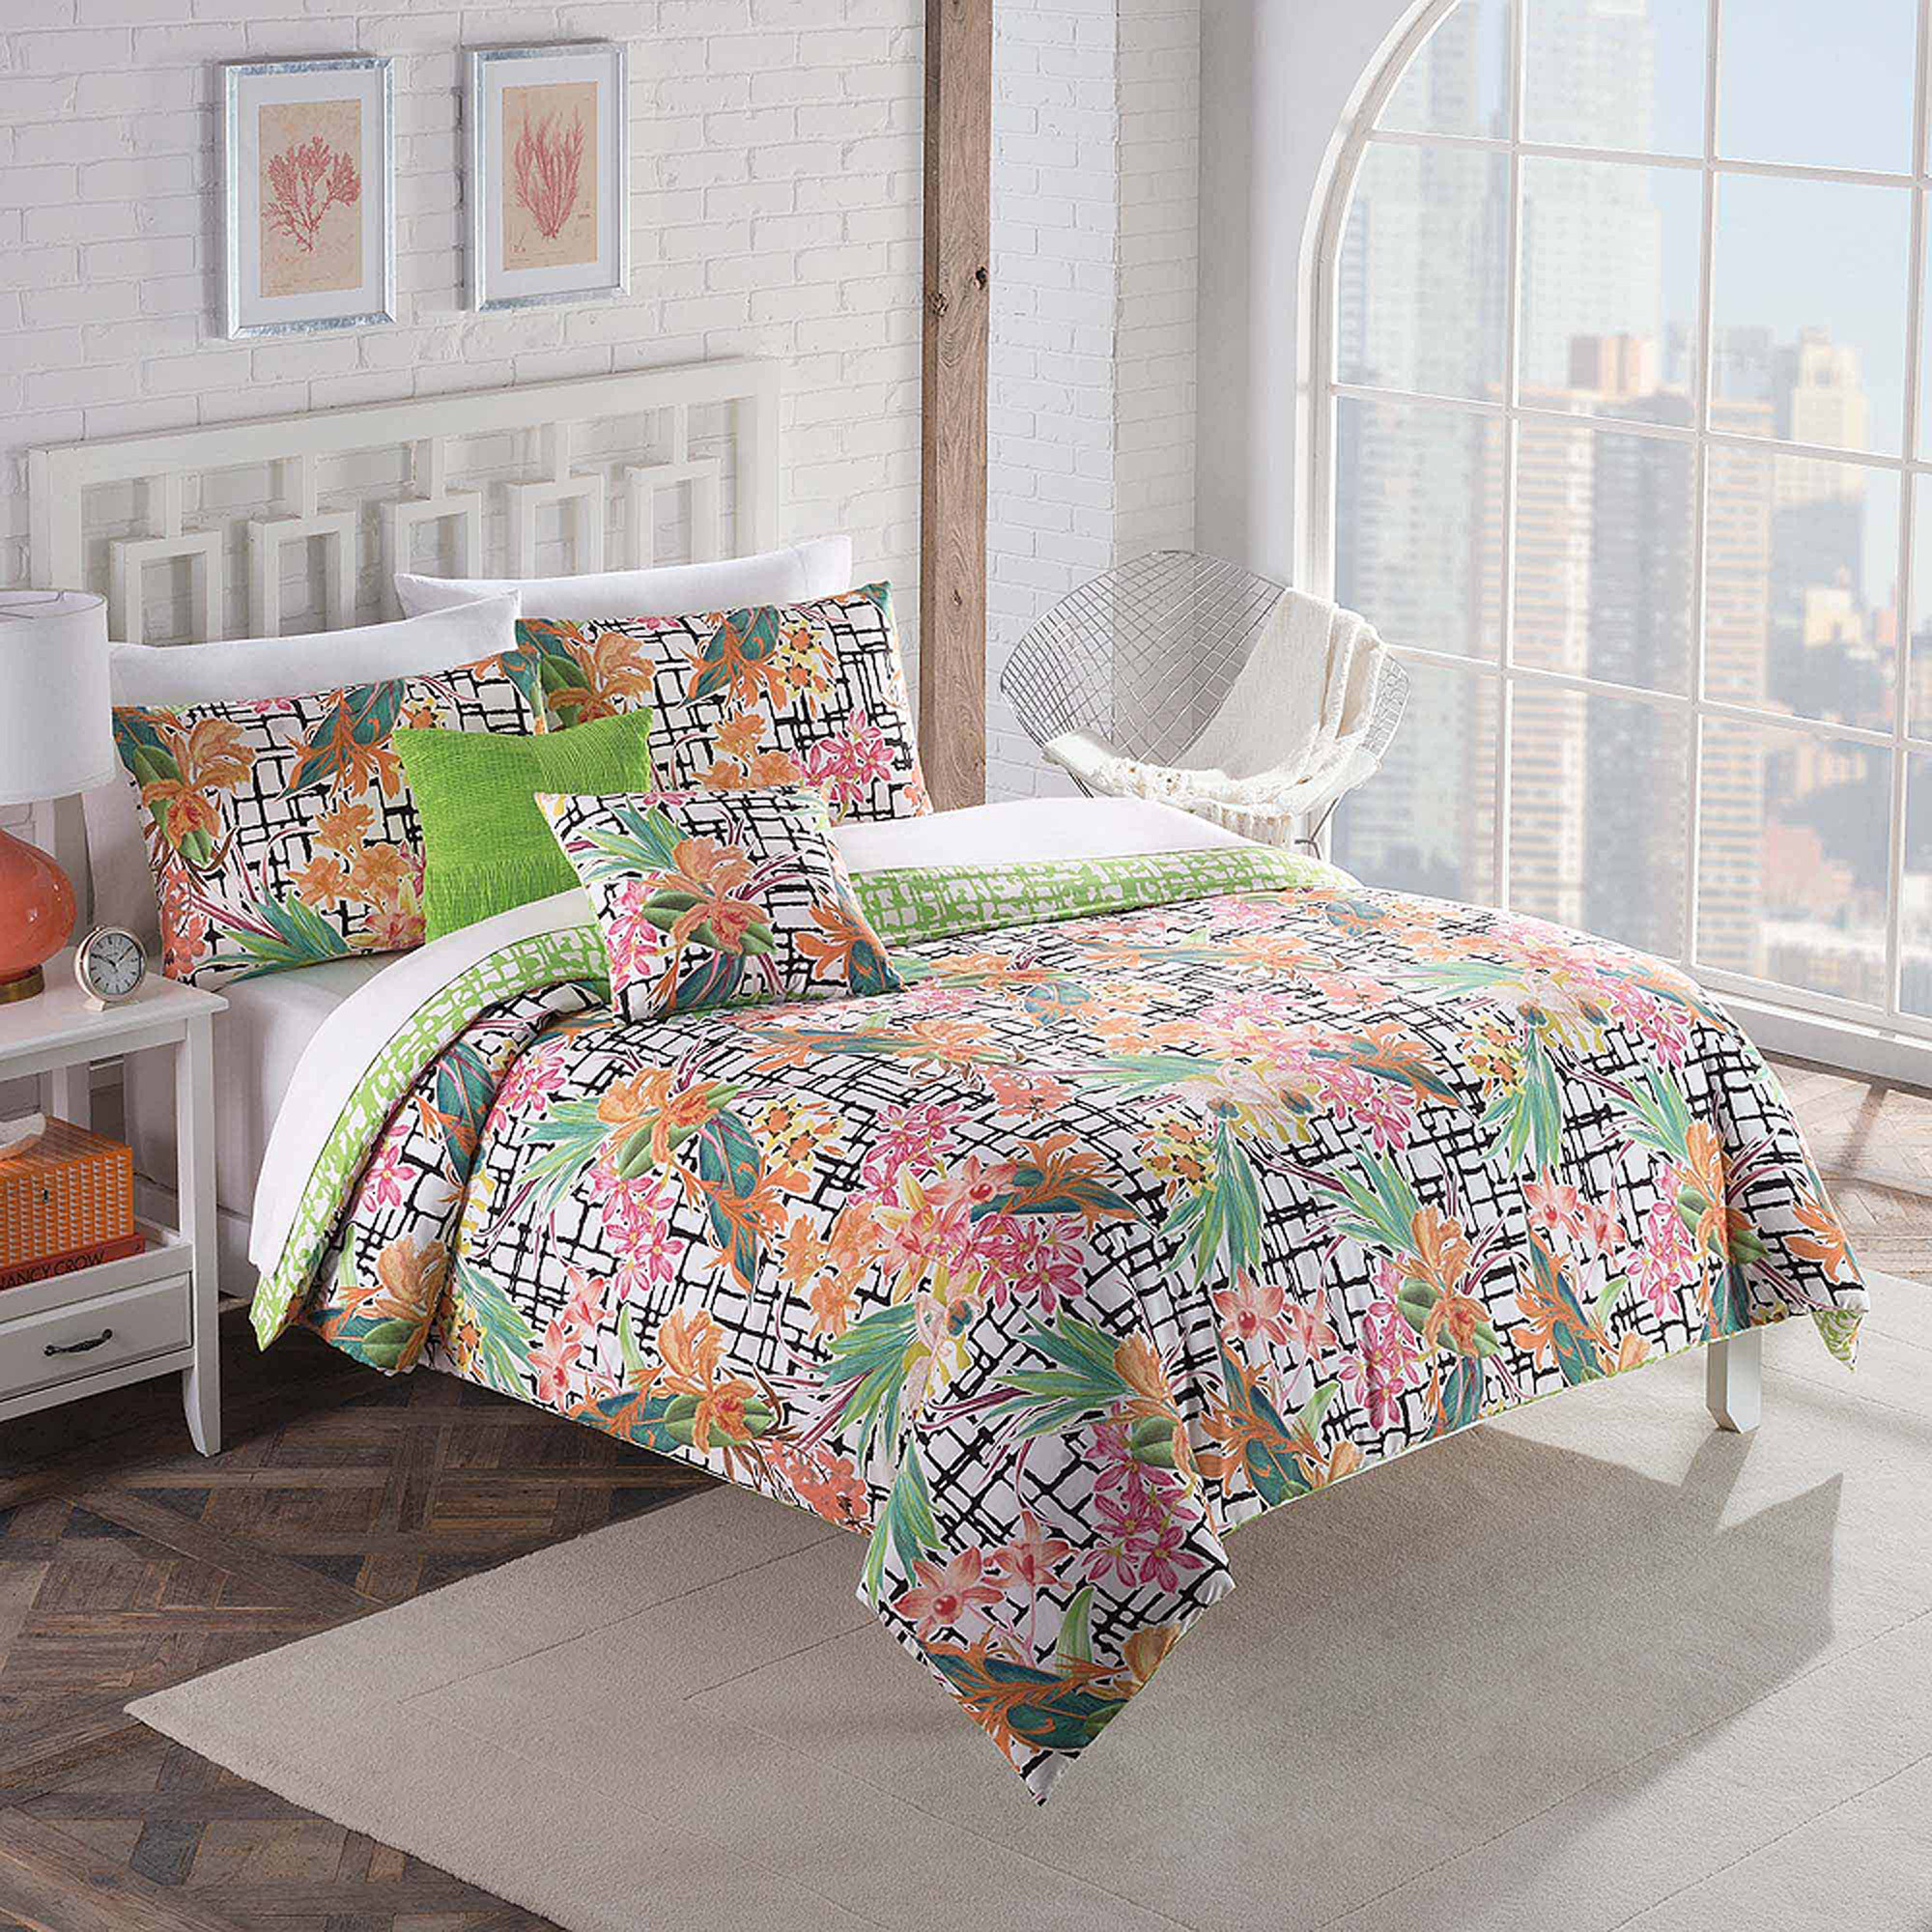 Vue Fiji Bedding Comforter Set